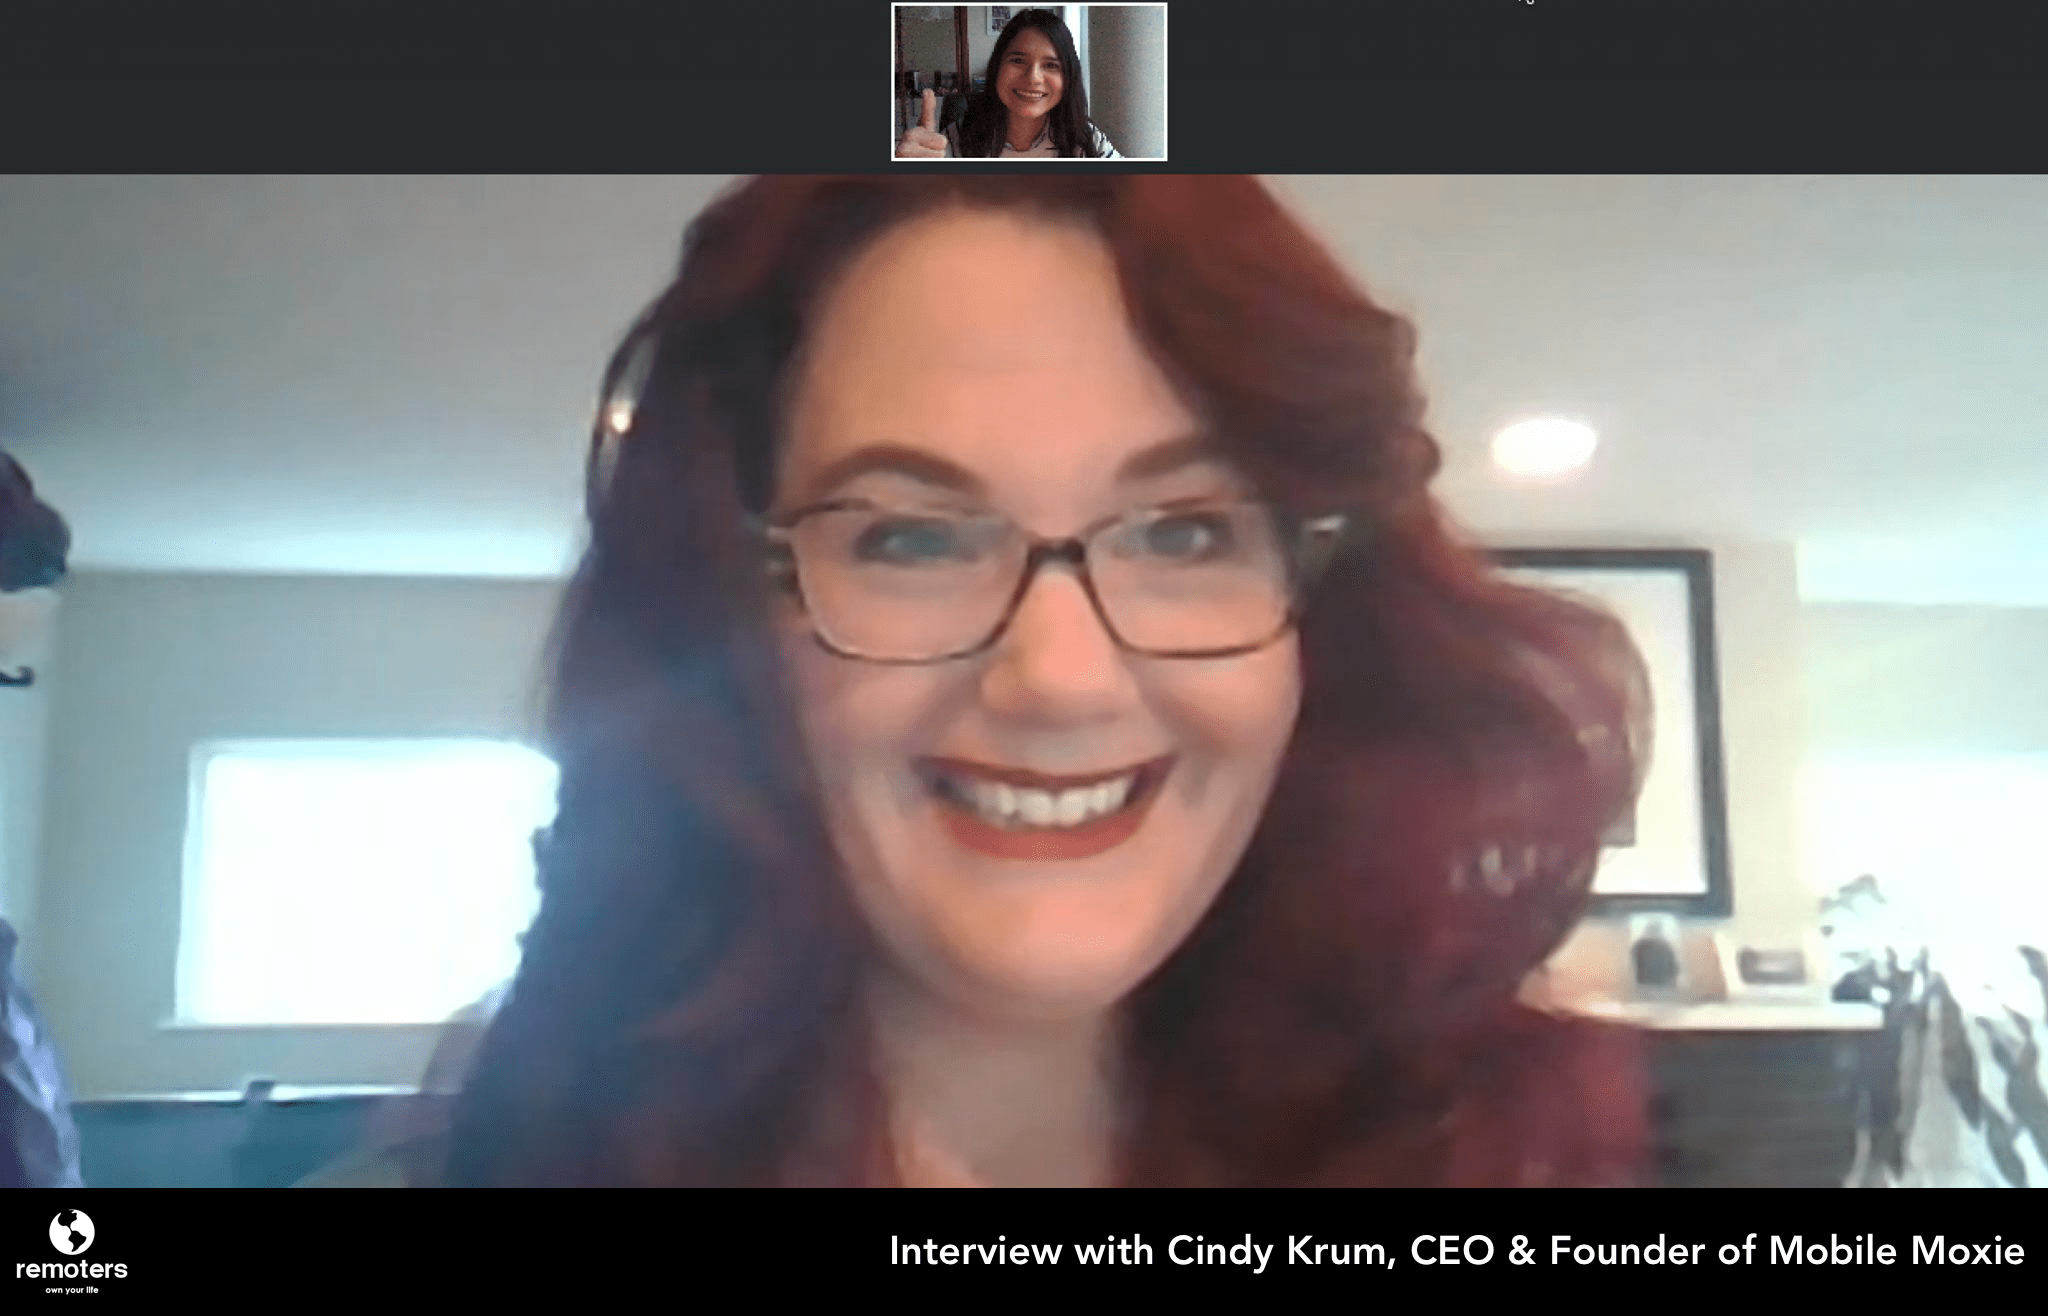 Interview with Cindy Krum, CEO & Founder at Mobile Moxie